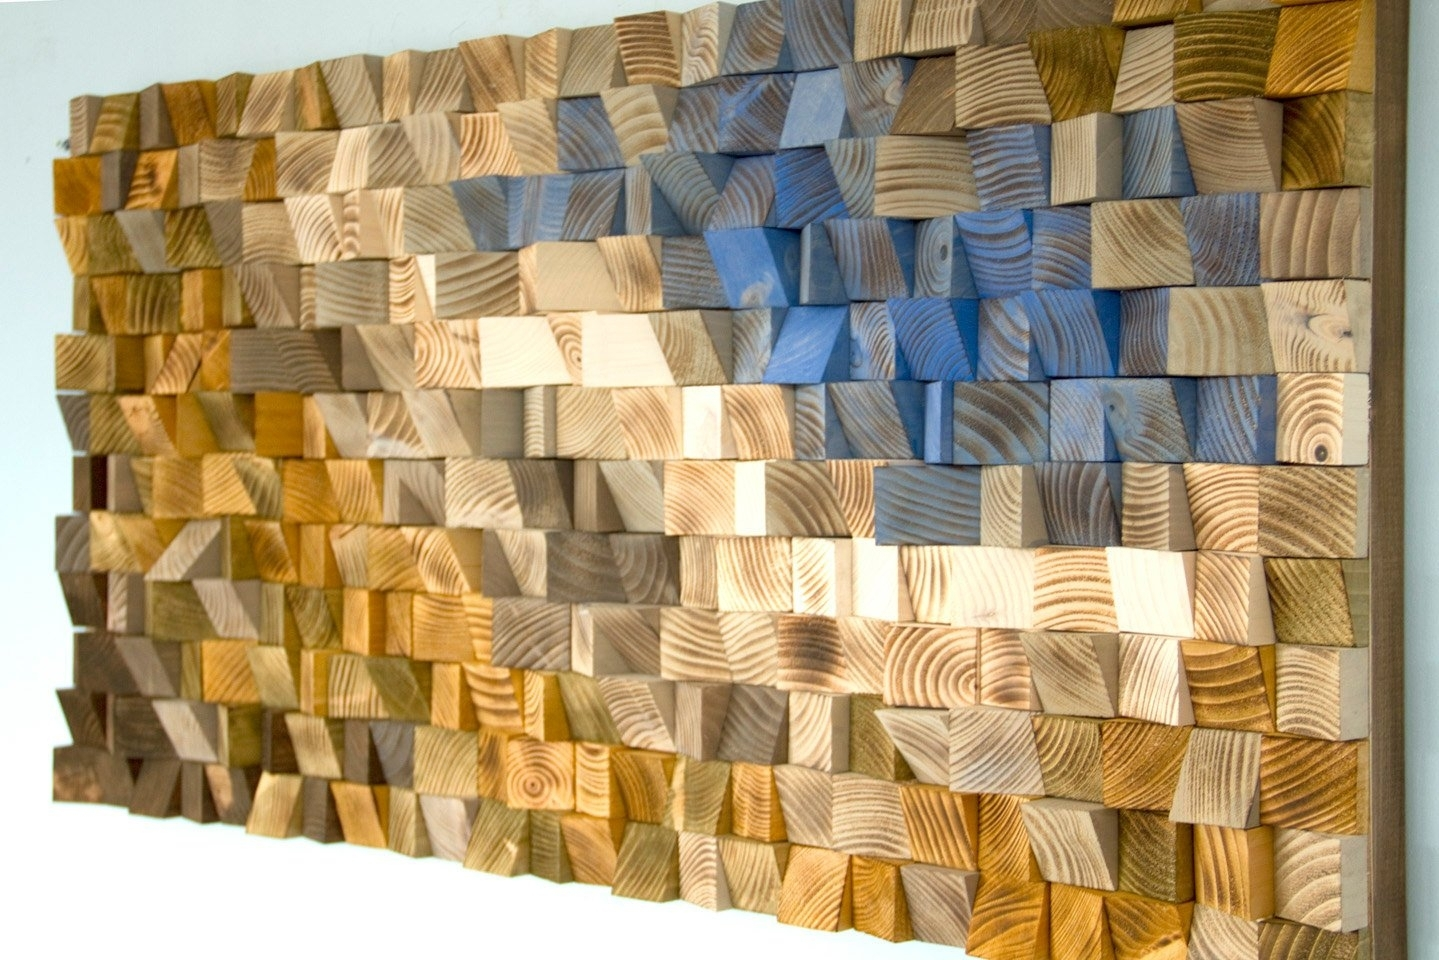 Reclaimed Wood Wall Art, Wood Mosaic, Geometric Art, Wood Wall Art Intended For Best And Newest Reclaimed Wood Wall Art (View 10 of 15)